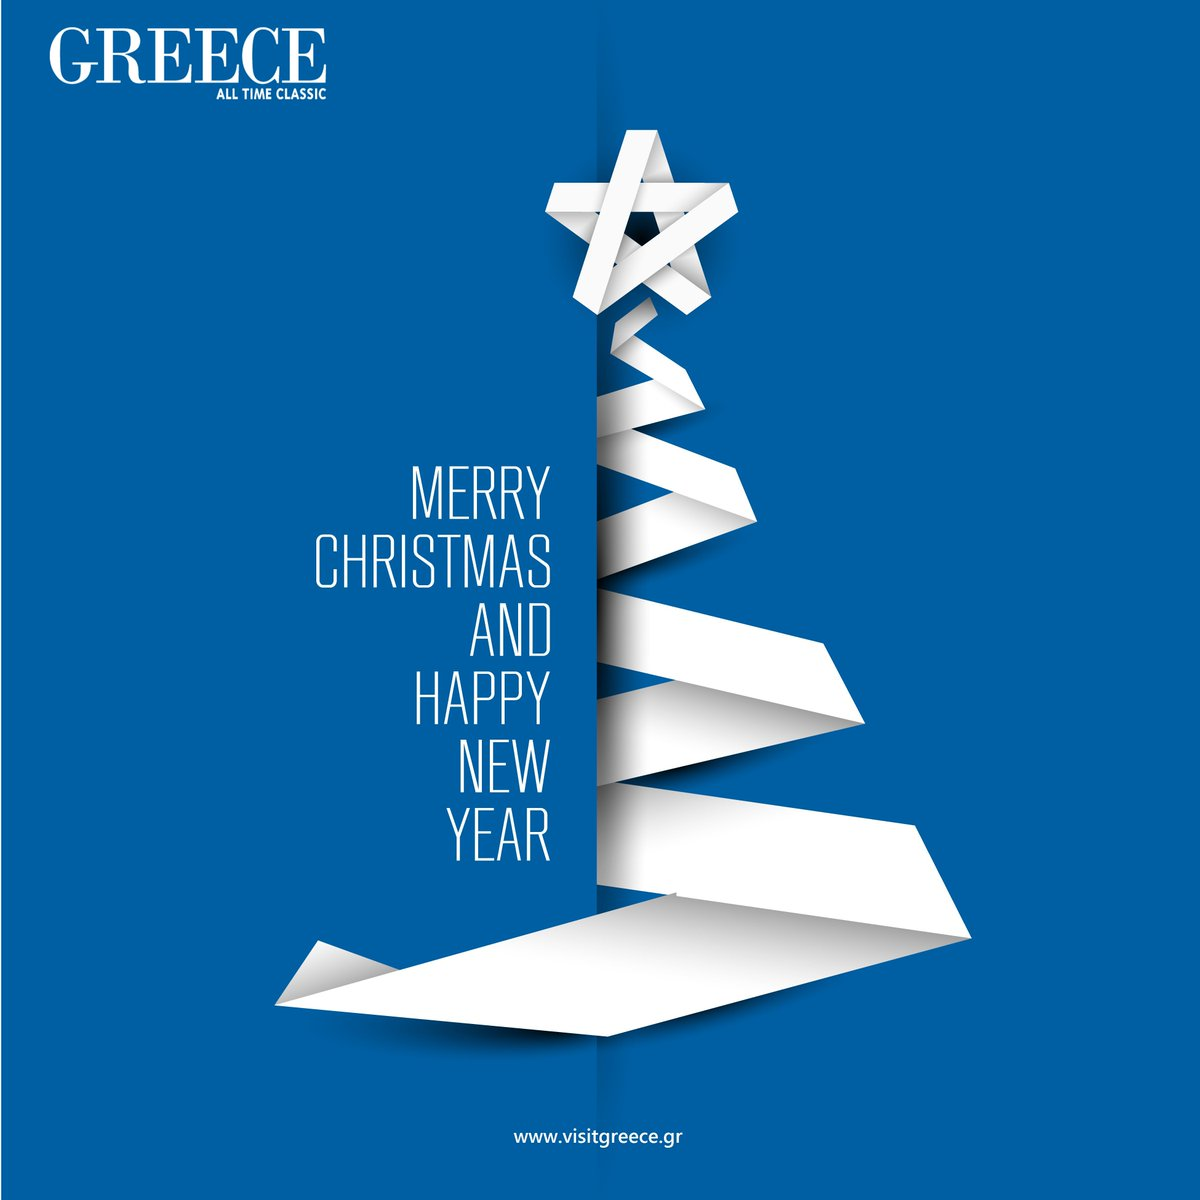 visit greece on twitter merry christmas and happy new year greece visitgreece travel ttot - Merry Christmas In Greek